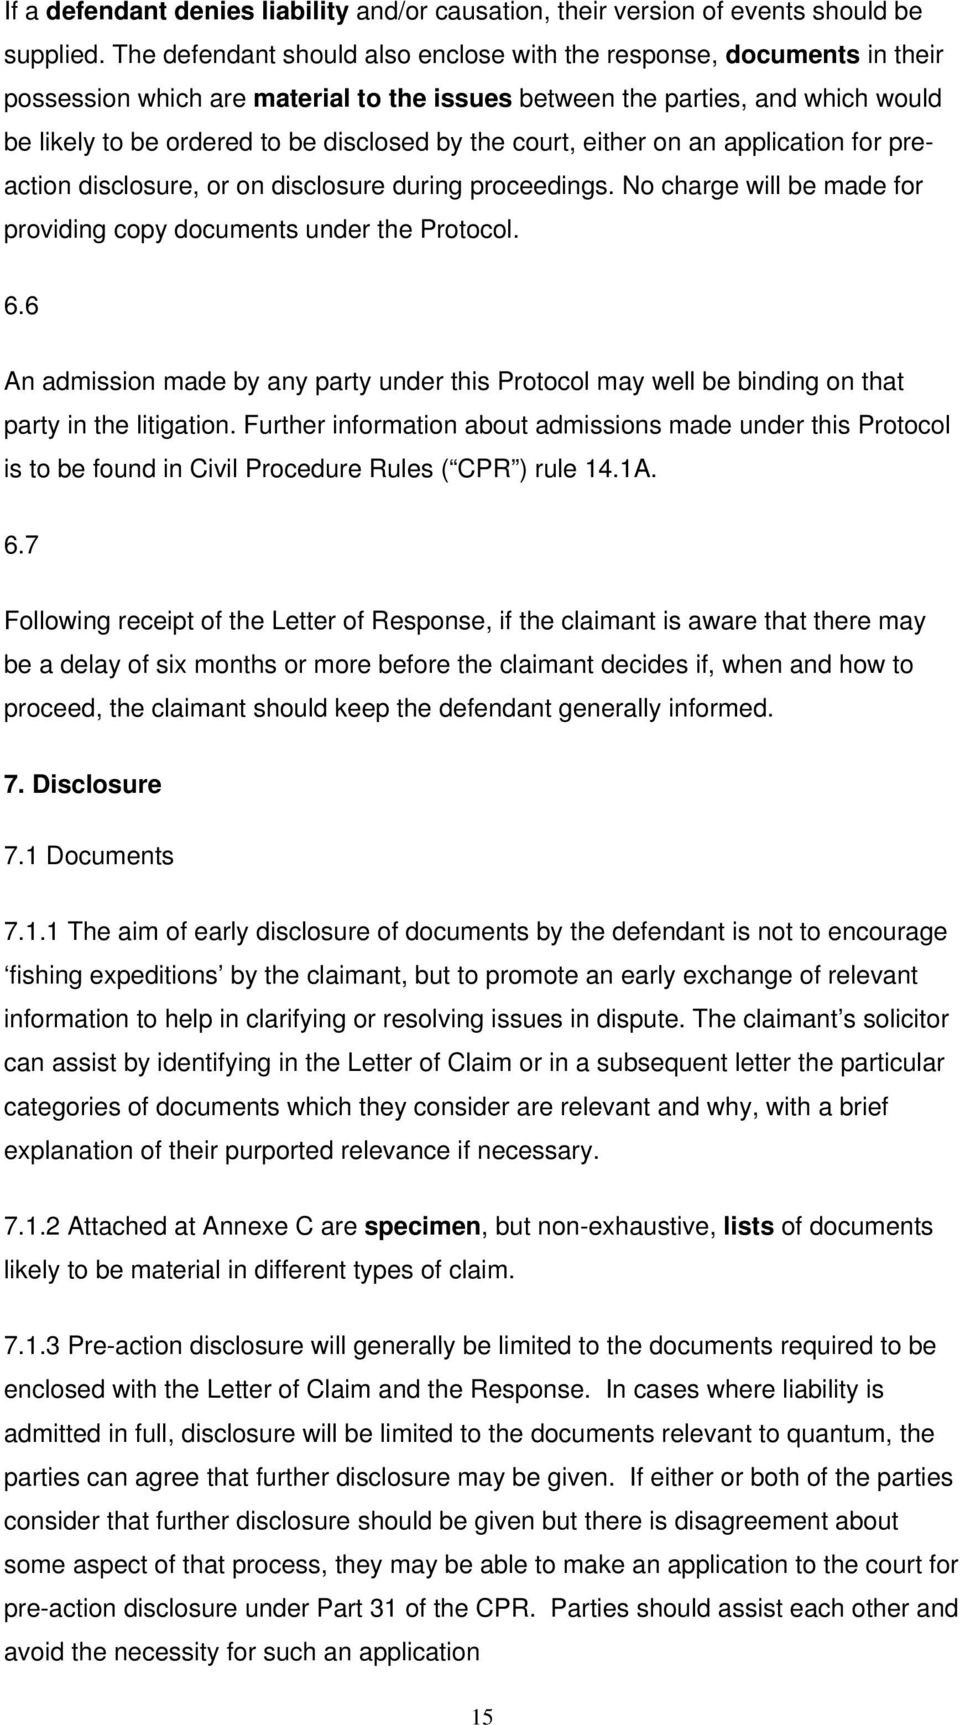 court, either on an application for preaction disclosure, or on disclosure during proceedings. No charge will be made for providing copy documents under the Protocol. 6.